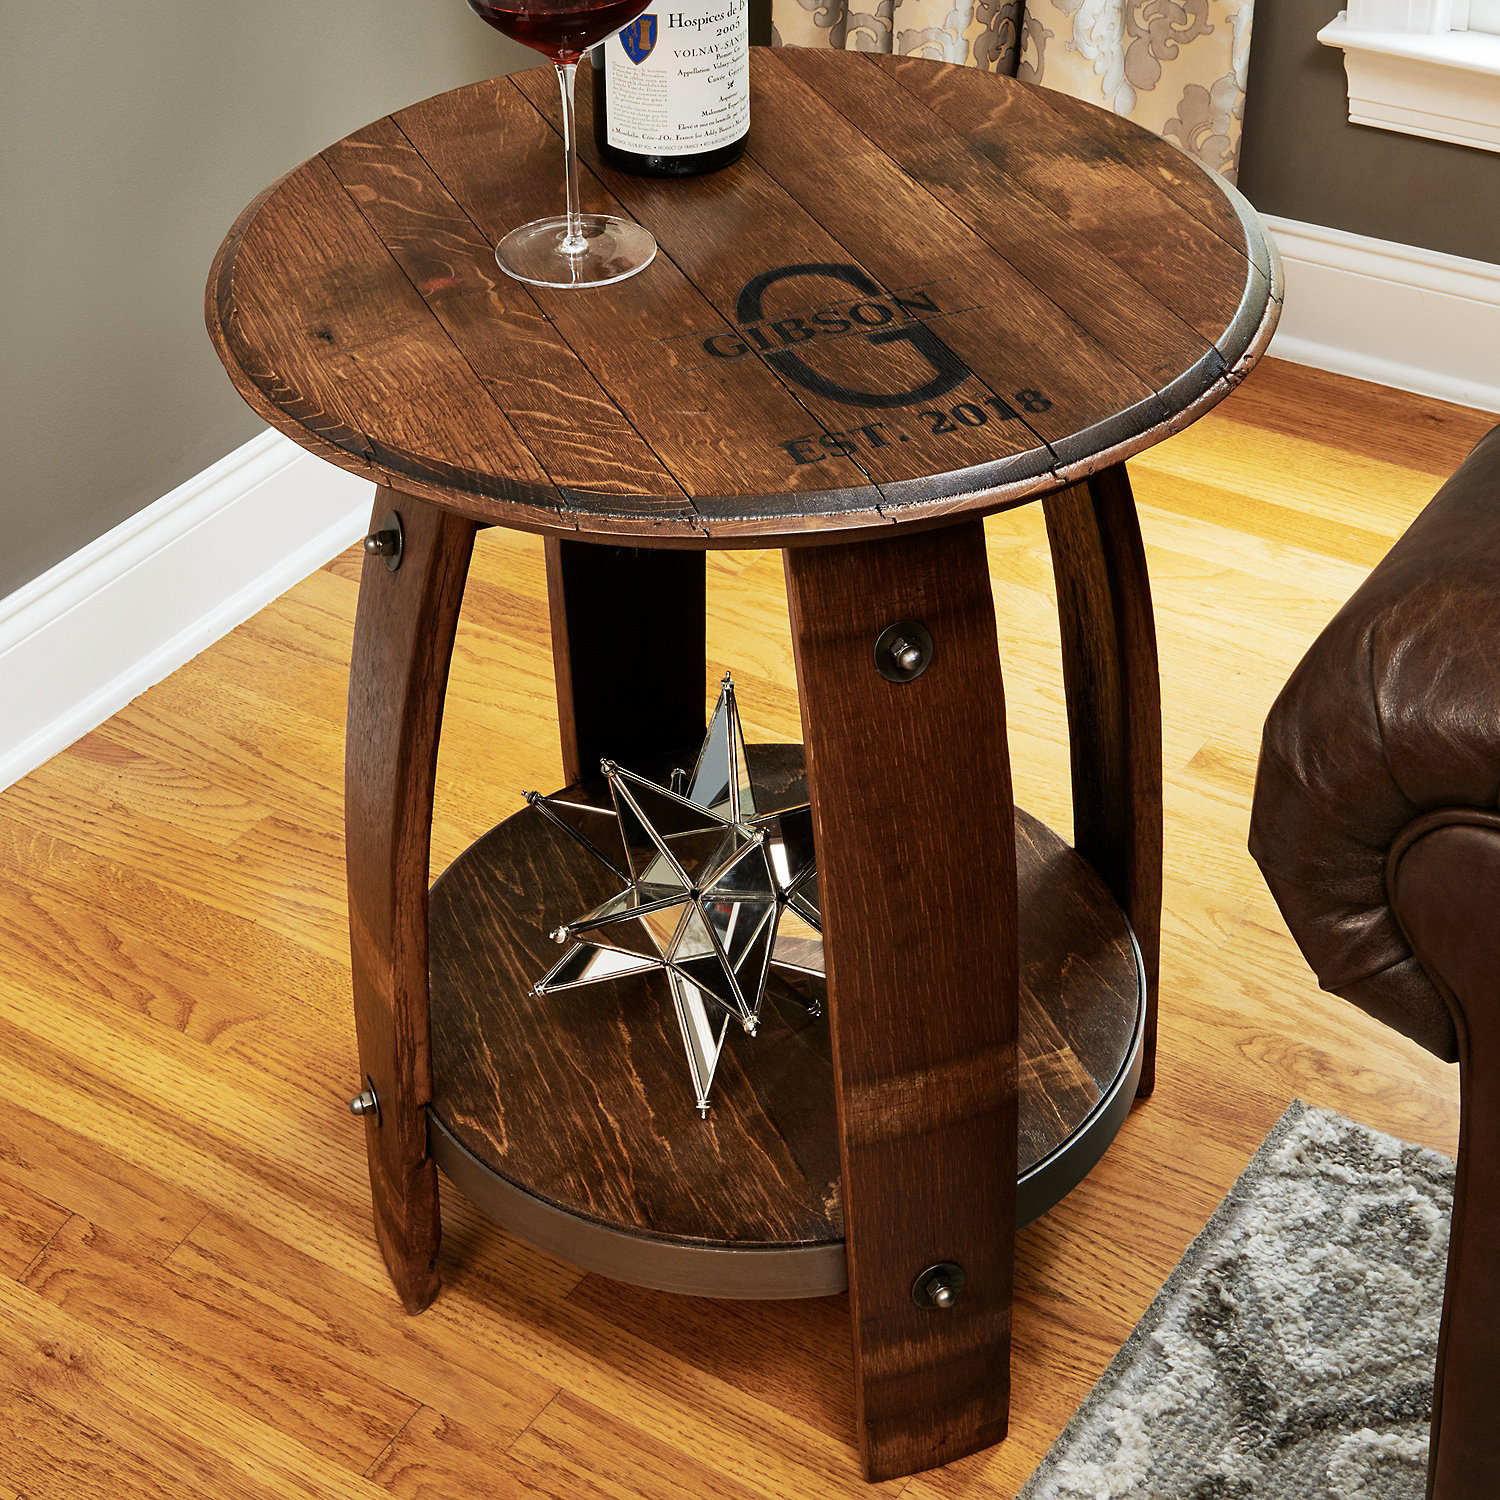 wine barrel end table enthusiast accent espresso color coffee patio dining sets with umbrella device charging chest for bedroom industrial style side hardwood floor threshold grey